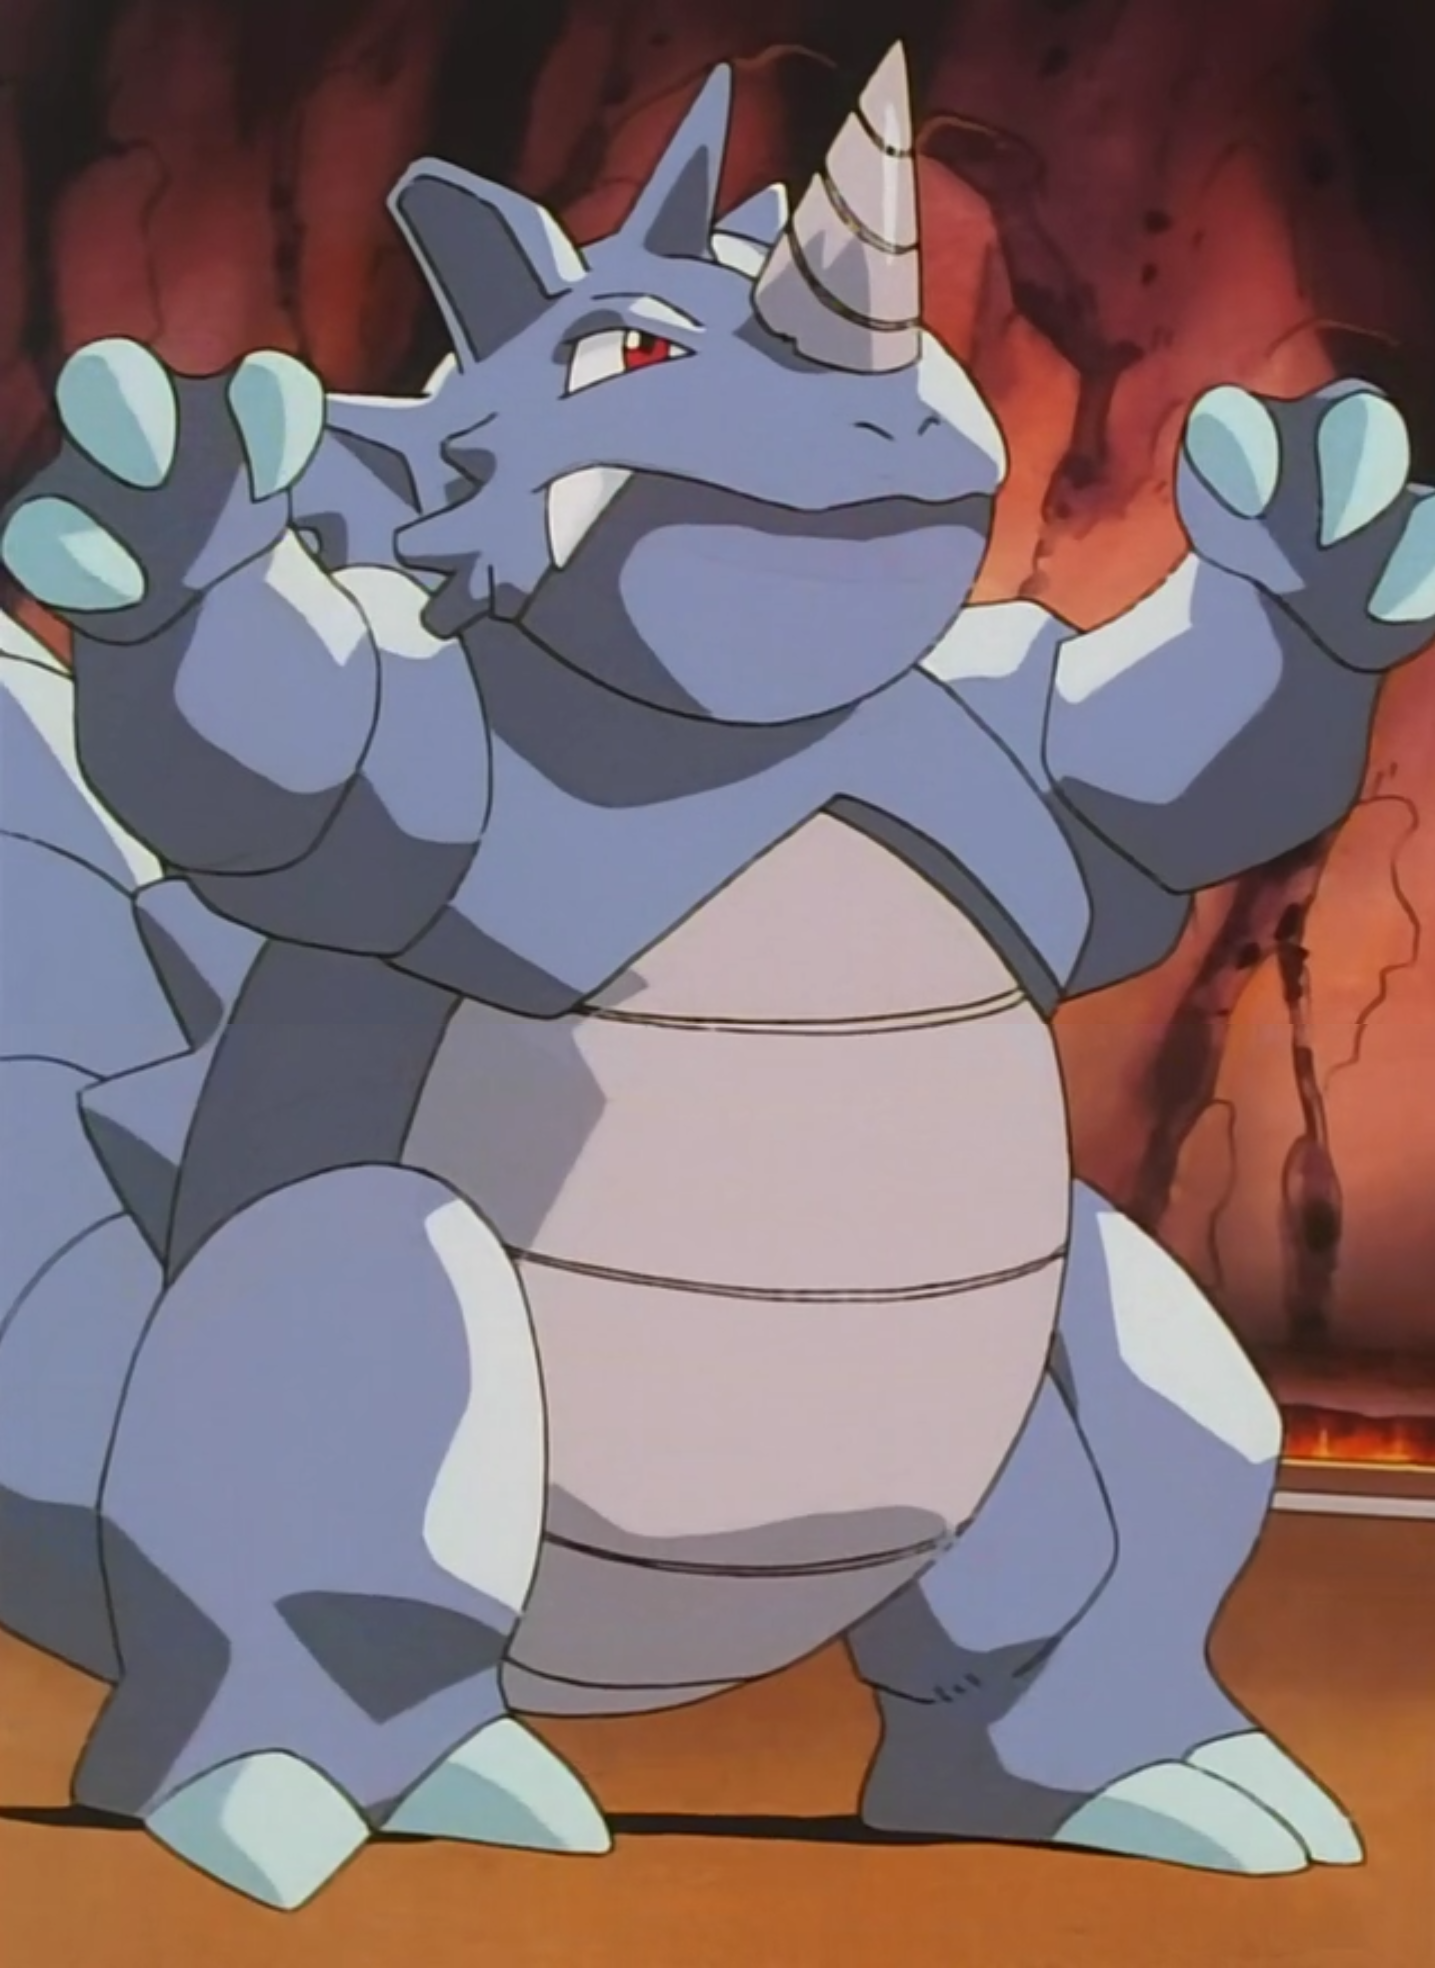 Blaines Rhydon Pokémon Wiki Fandom Powered By Wikia